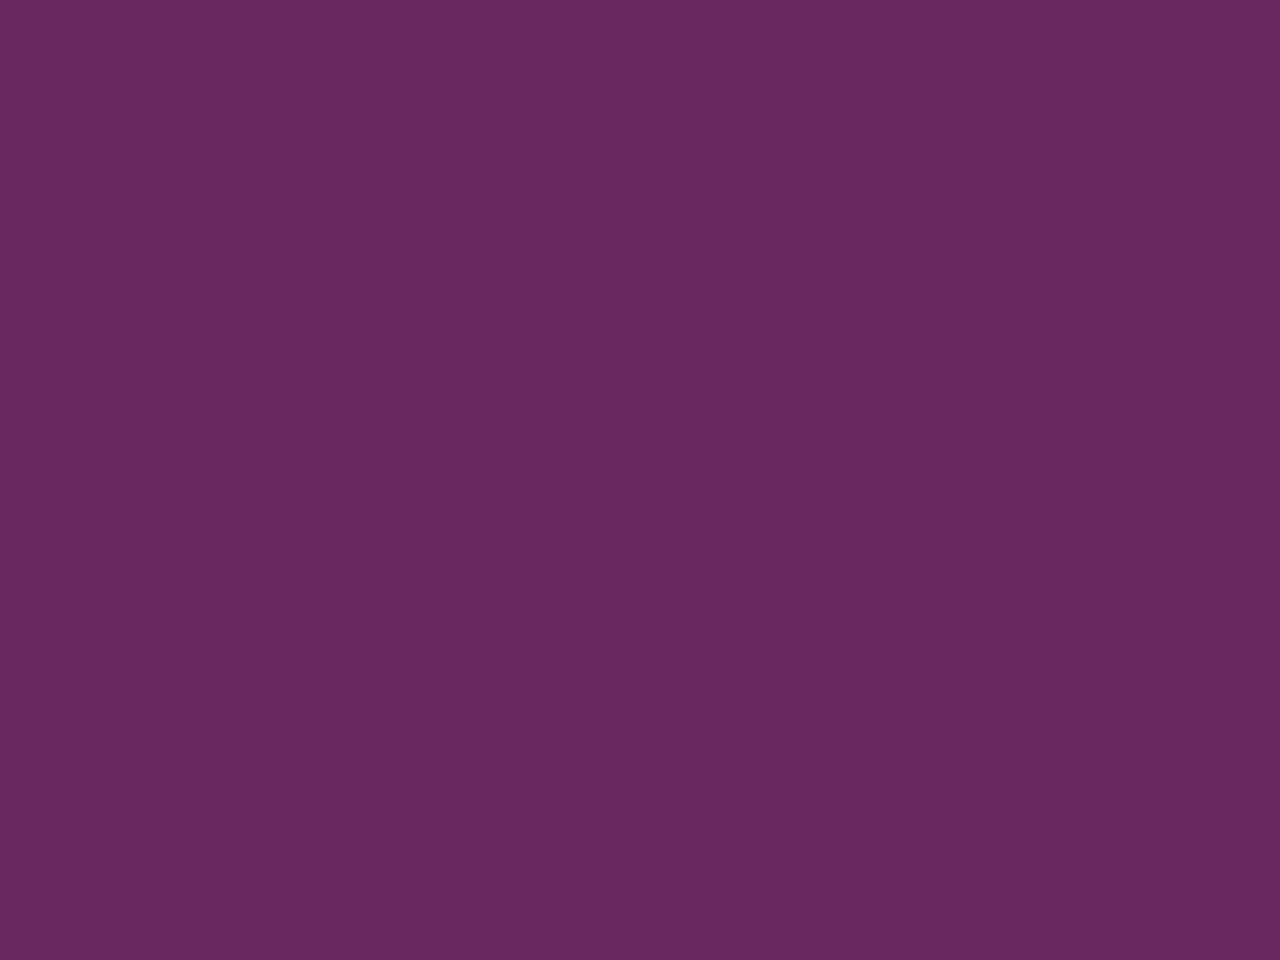 1280x960 Palatinate Purple Solid Color Background